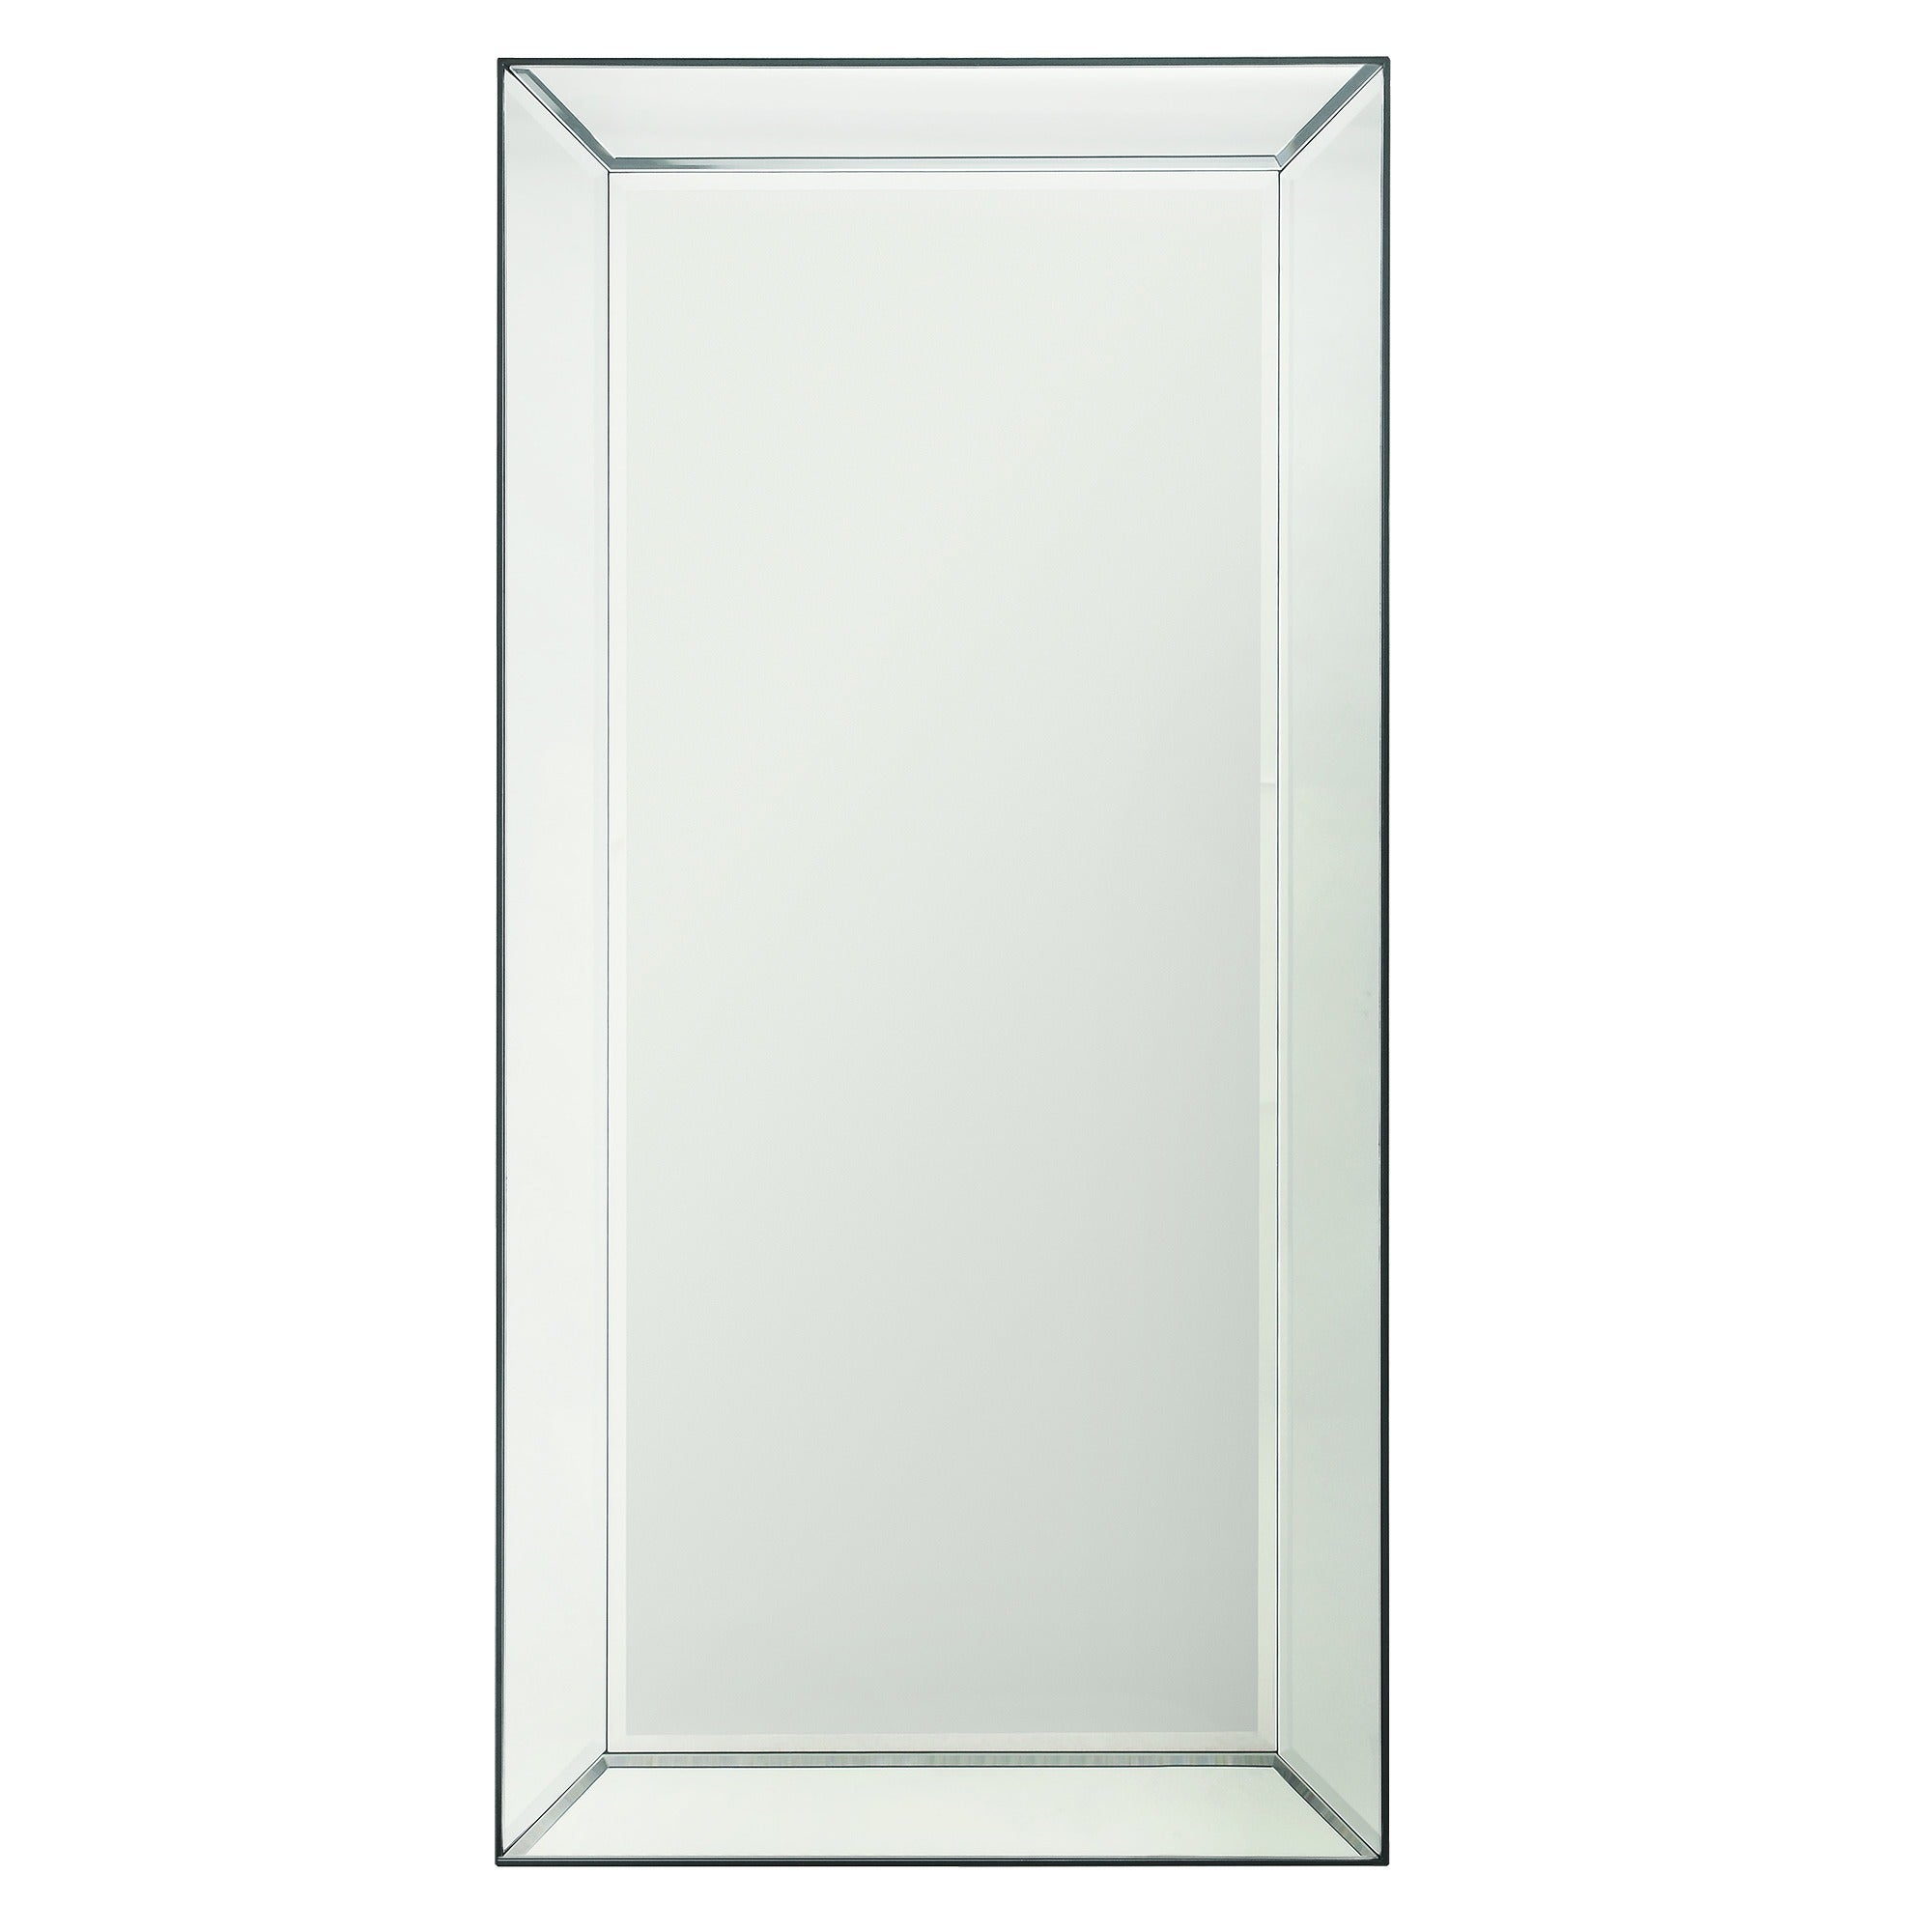 Conrad Mirrored Frame Rectangular Accent Wall Mirrorinspire Q Bold – Silver Inside Rectangle Accent Wall Mirrors (View 6 of 20)